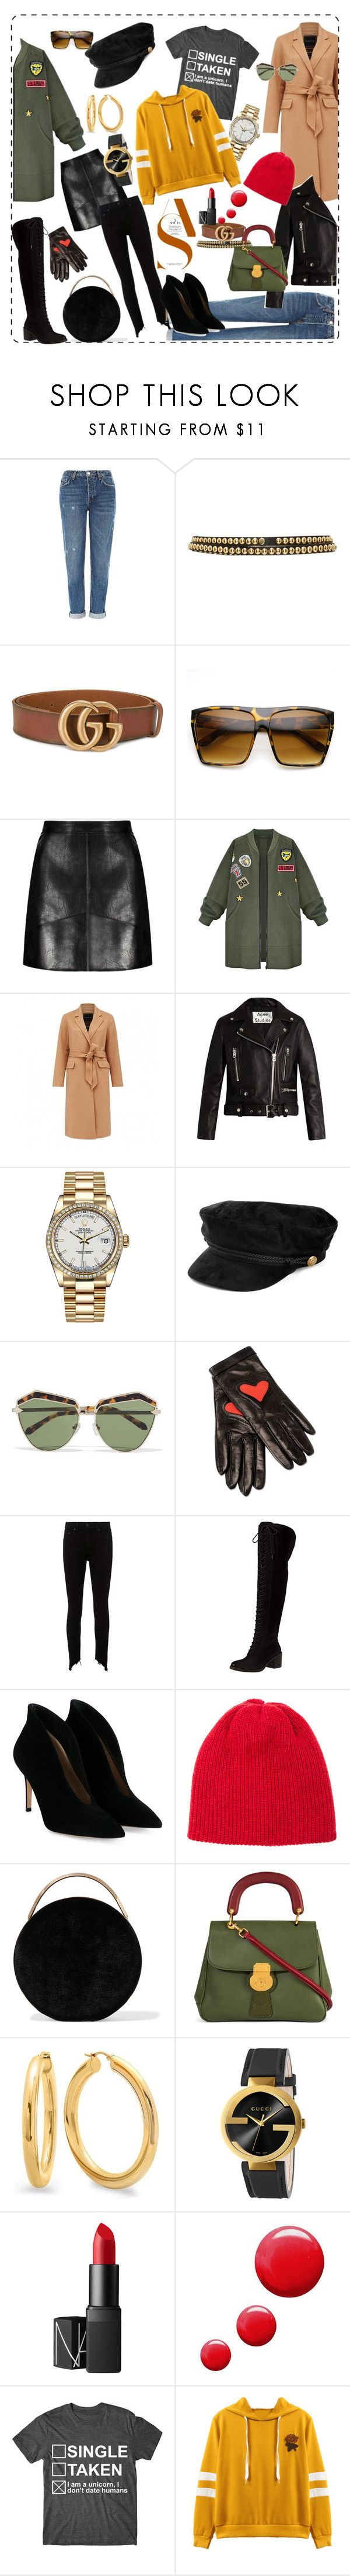 """Red tshirt"" by liubovdrekostyle on Polyvore featuring Topshop, Burberry, Gucci, ZeroUV, WithChic, Acne Studios, Rolex, Karen Walker, Boutique Moschino и rag & bone"